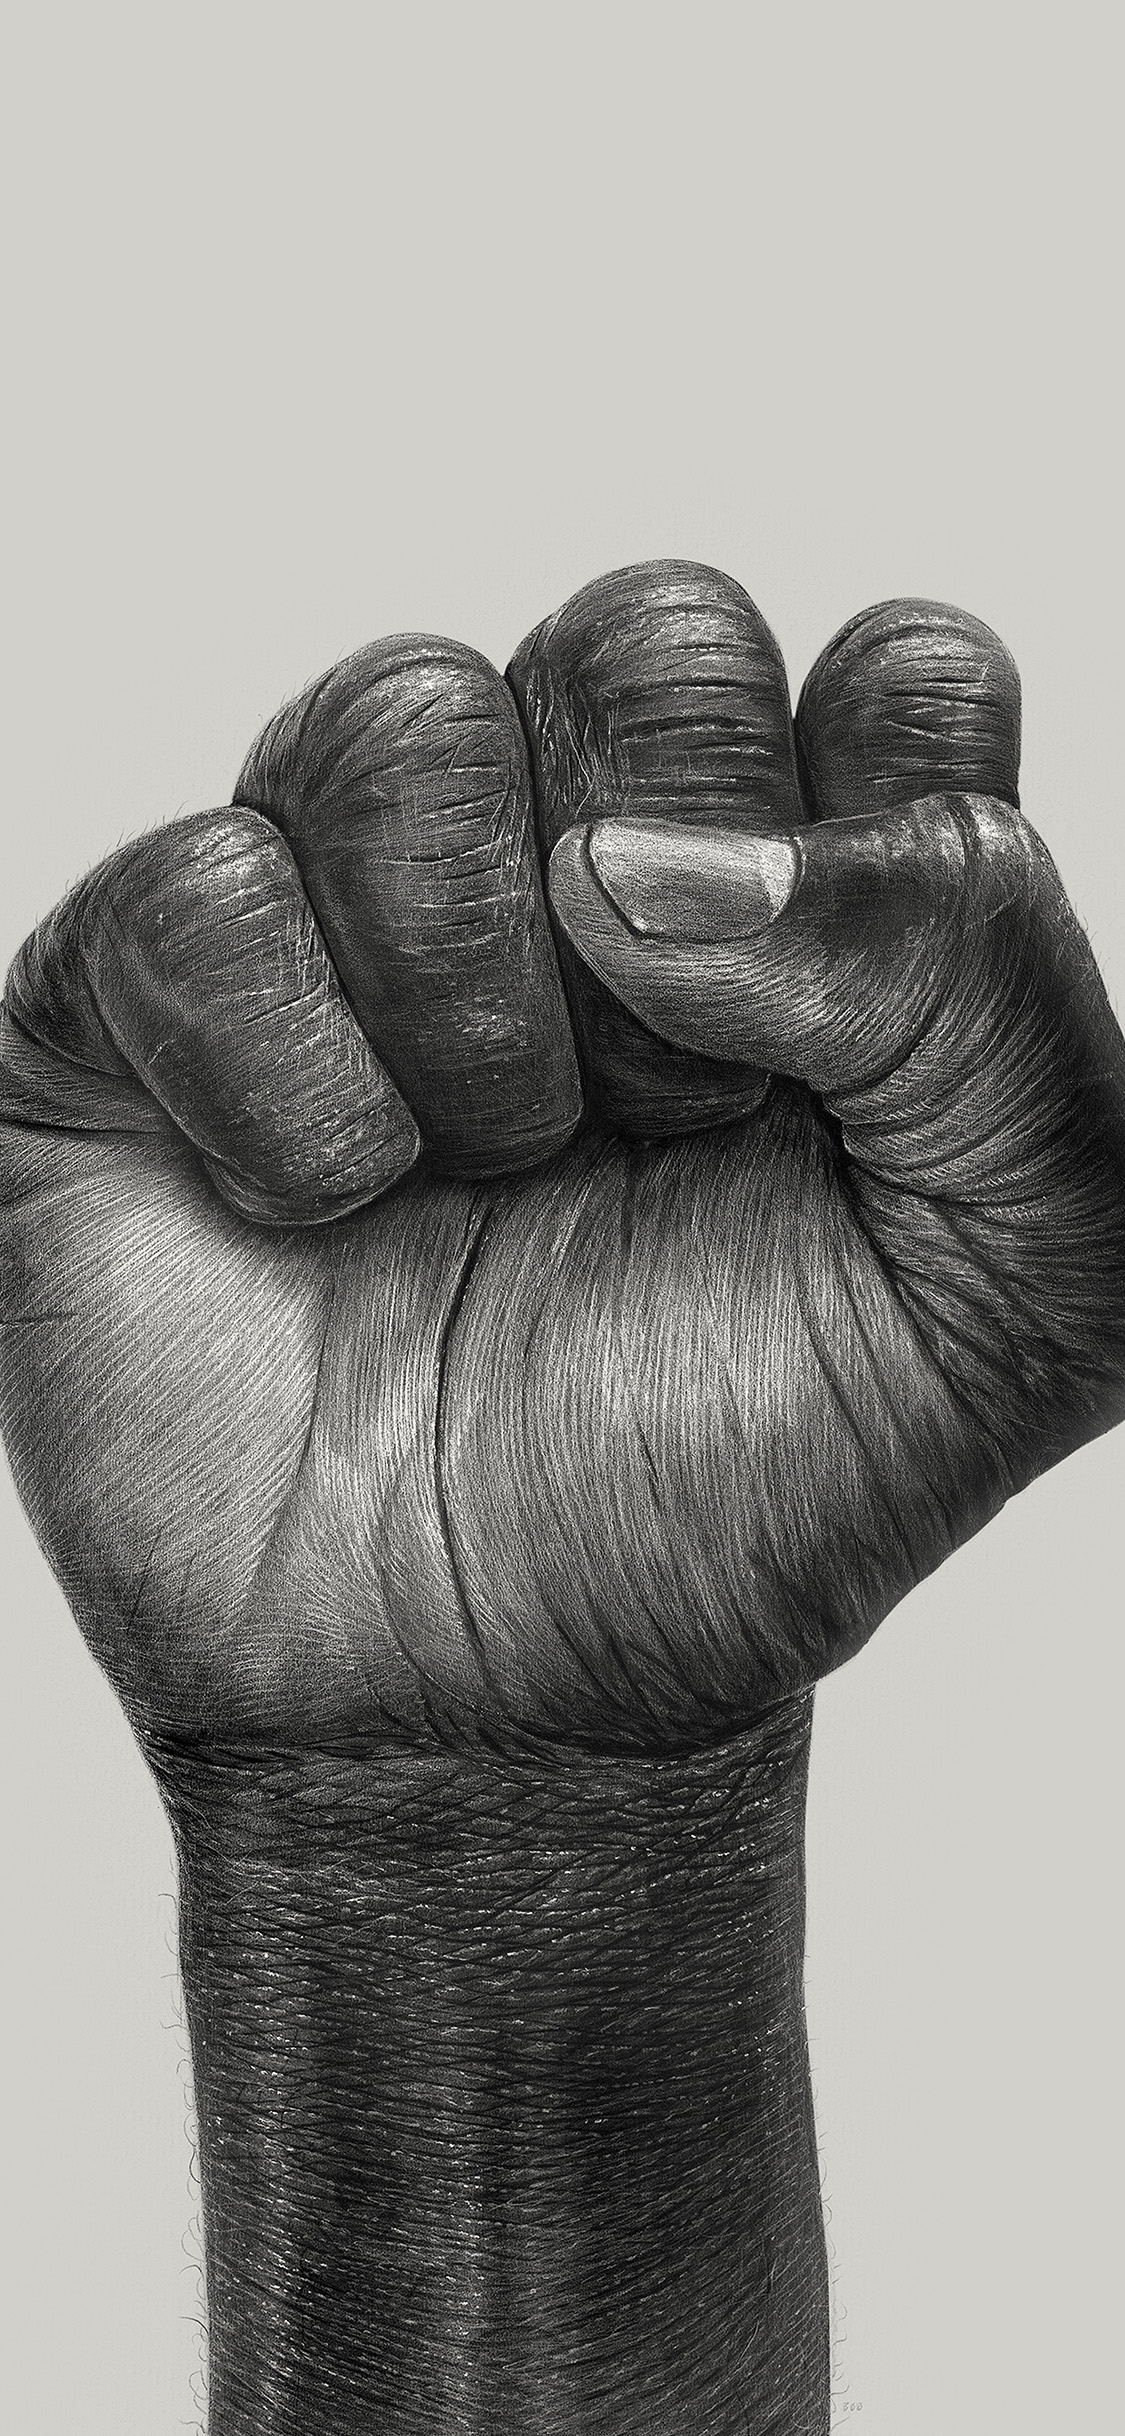 iPhonexpapers.com-Apple-iPhone-wallpaper-bf77-hand-illustration-black-art